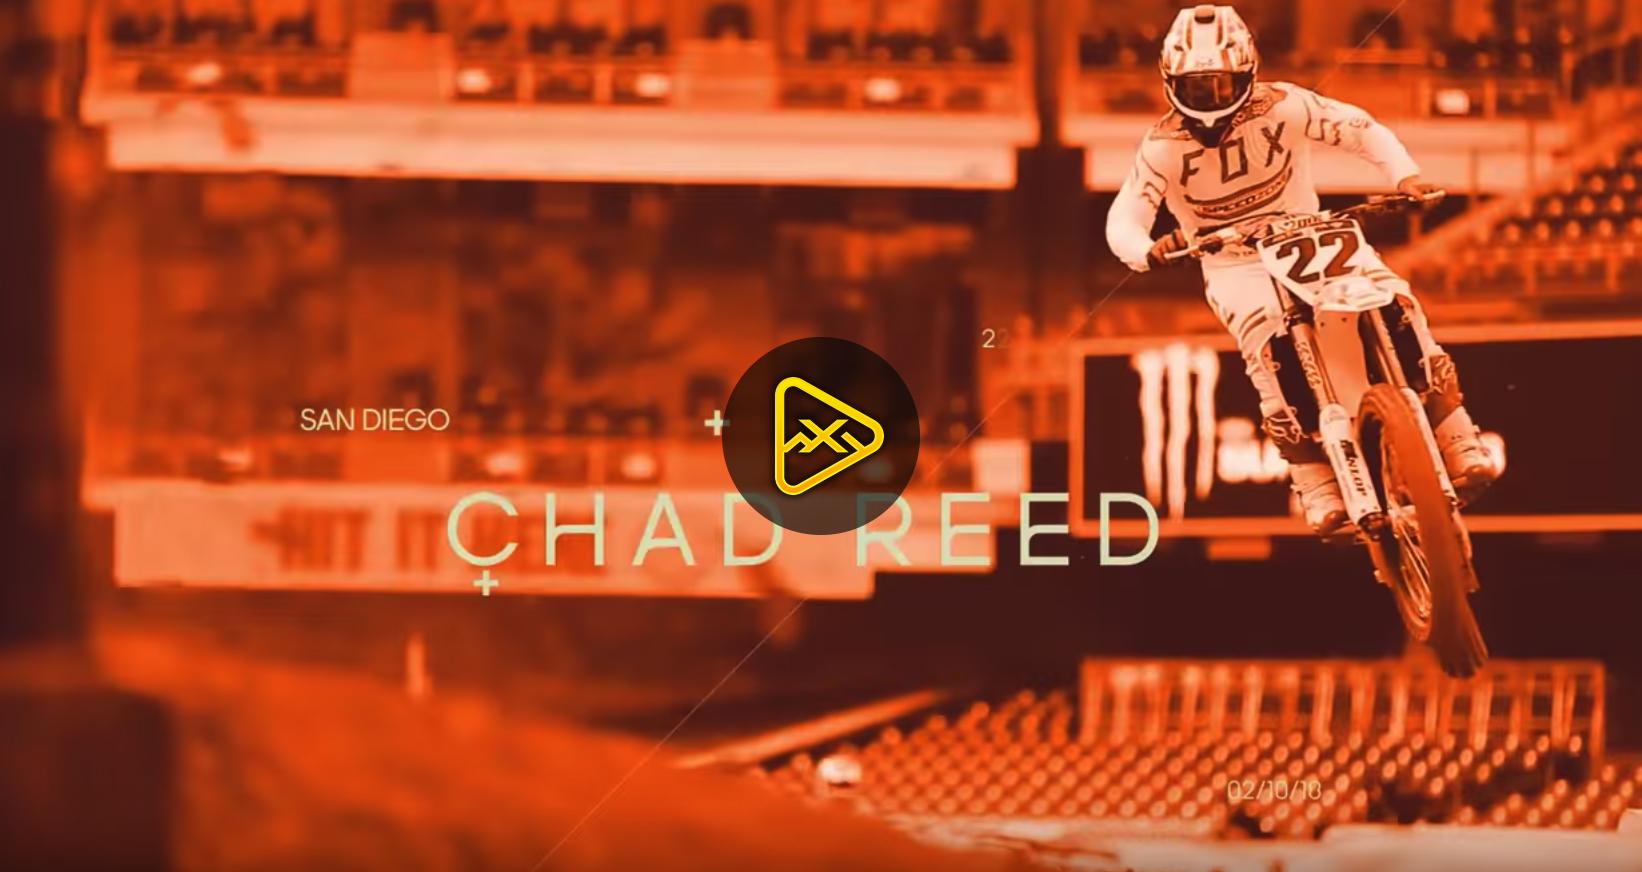 Behind the Scenes with Chad Reed – San Diego SX